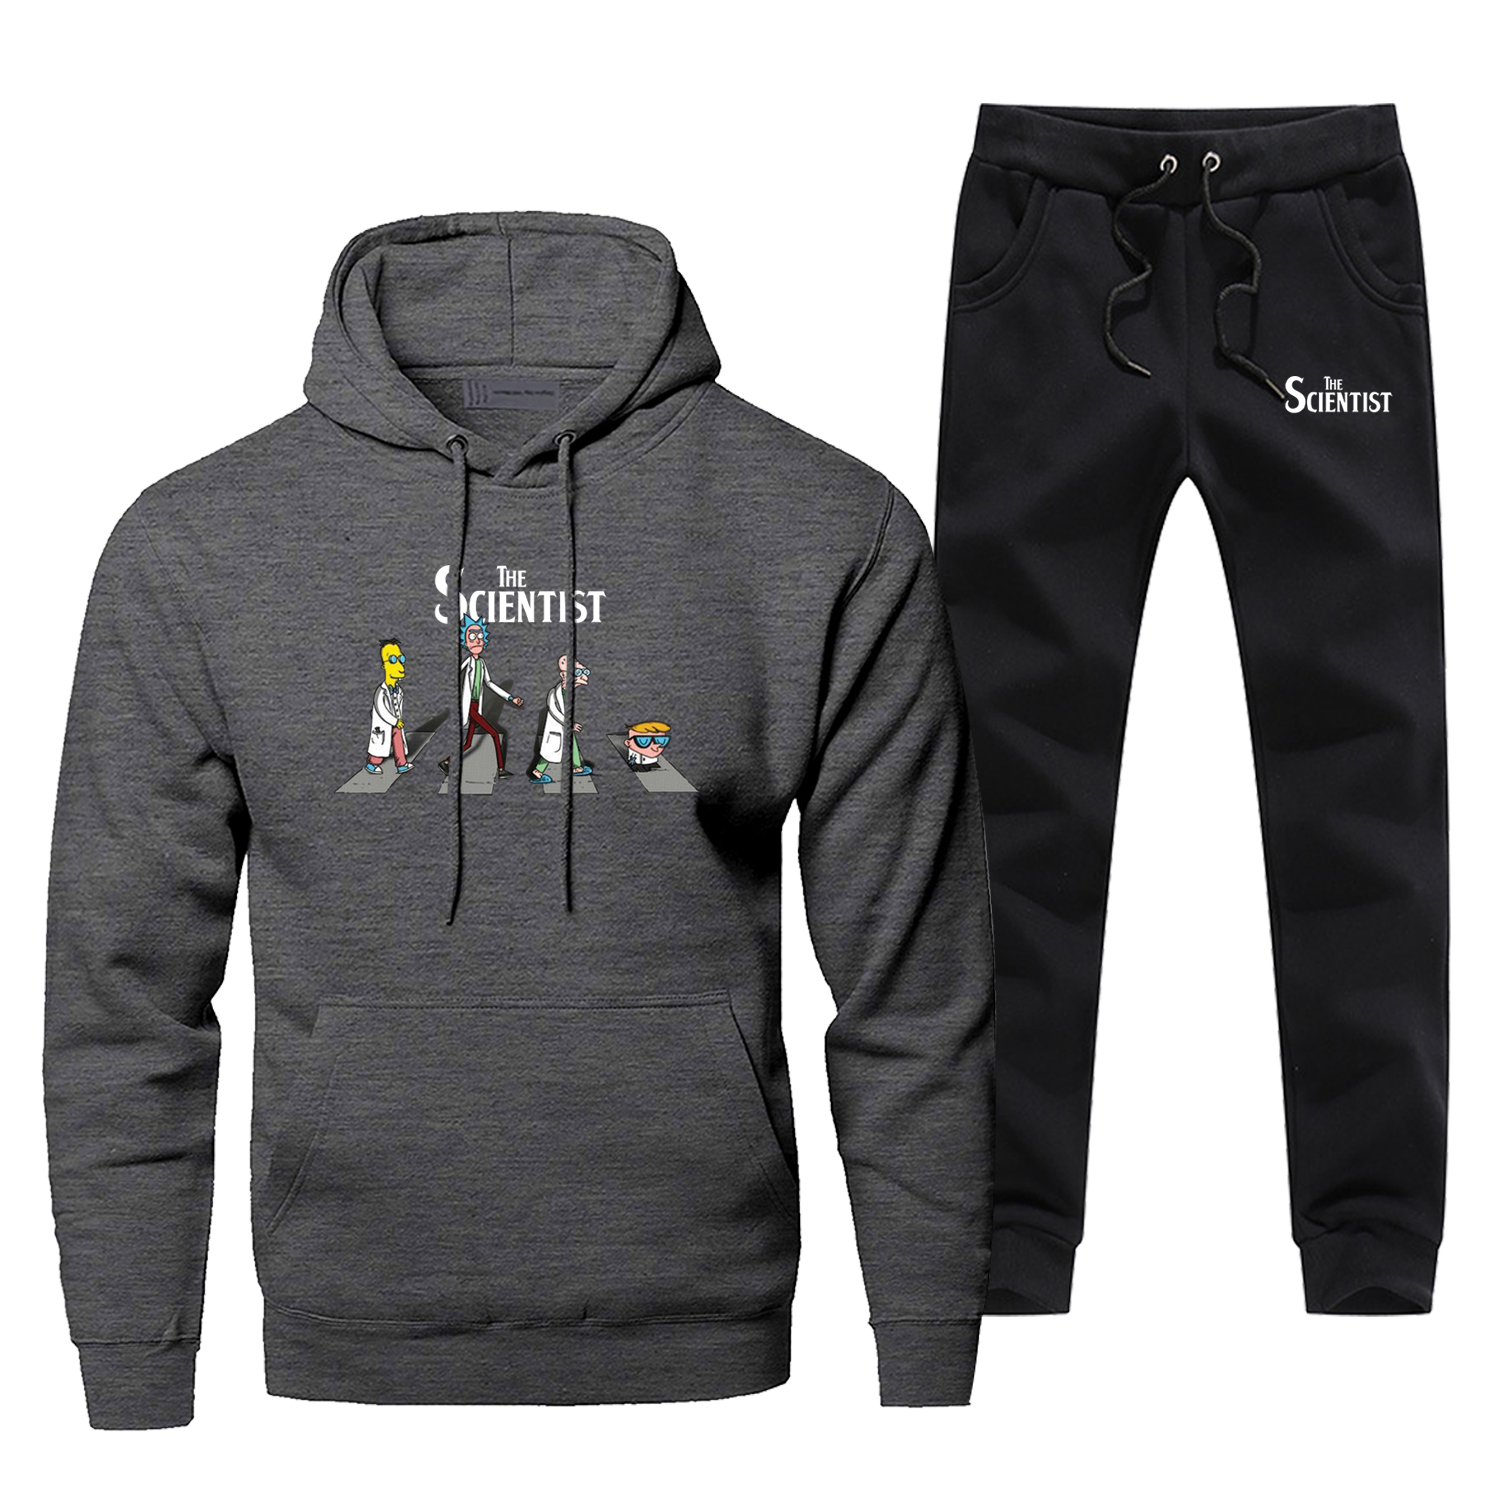 Funny Rick And Morty Line Up The Road Print Sweatshirt The Science Men Anime Hoodies Pants 2pcs Sets Fleece Sportswear Tracksuit